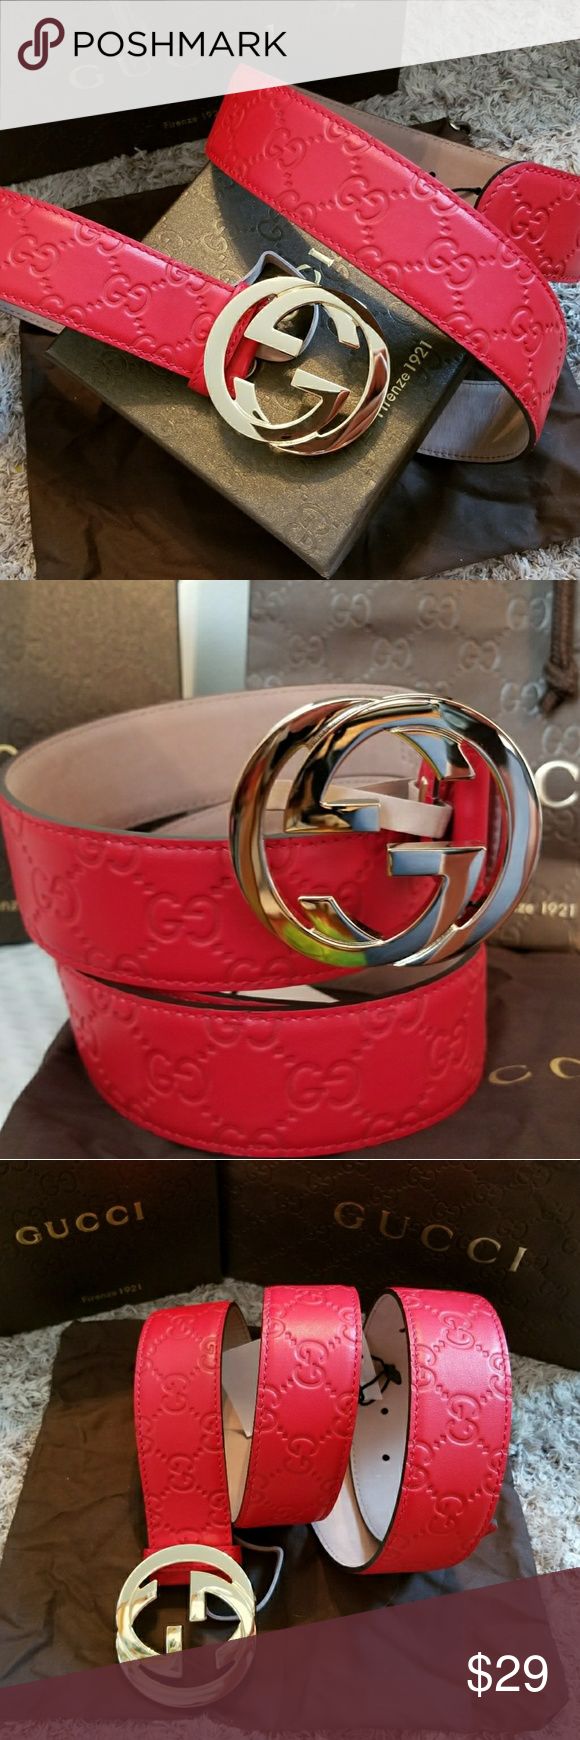 c8243e947a2 😎Authentic Gucci Belt Red Guccissima Supreme 😎Authentic Gucci Belt Red  Guccissima Supreme Print with Gold GG Buckle. Nice! Comes with tag